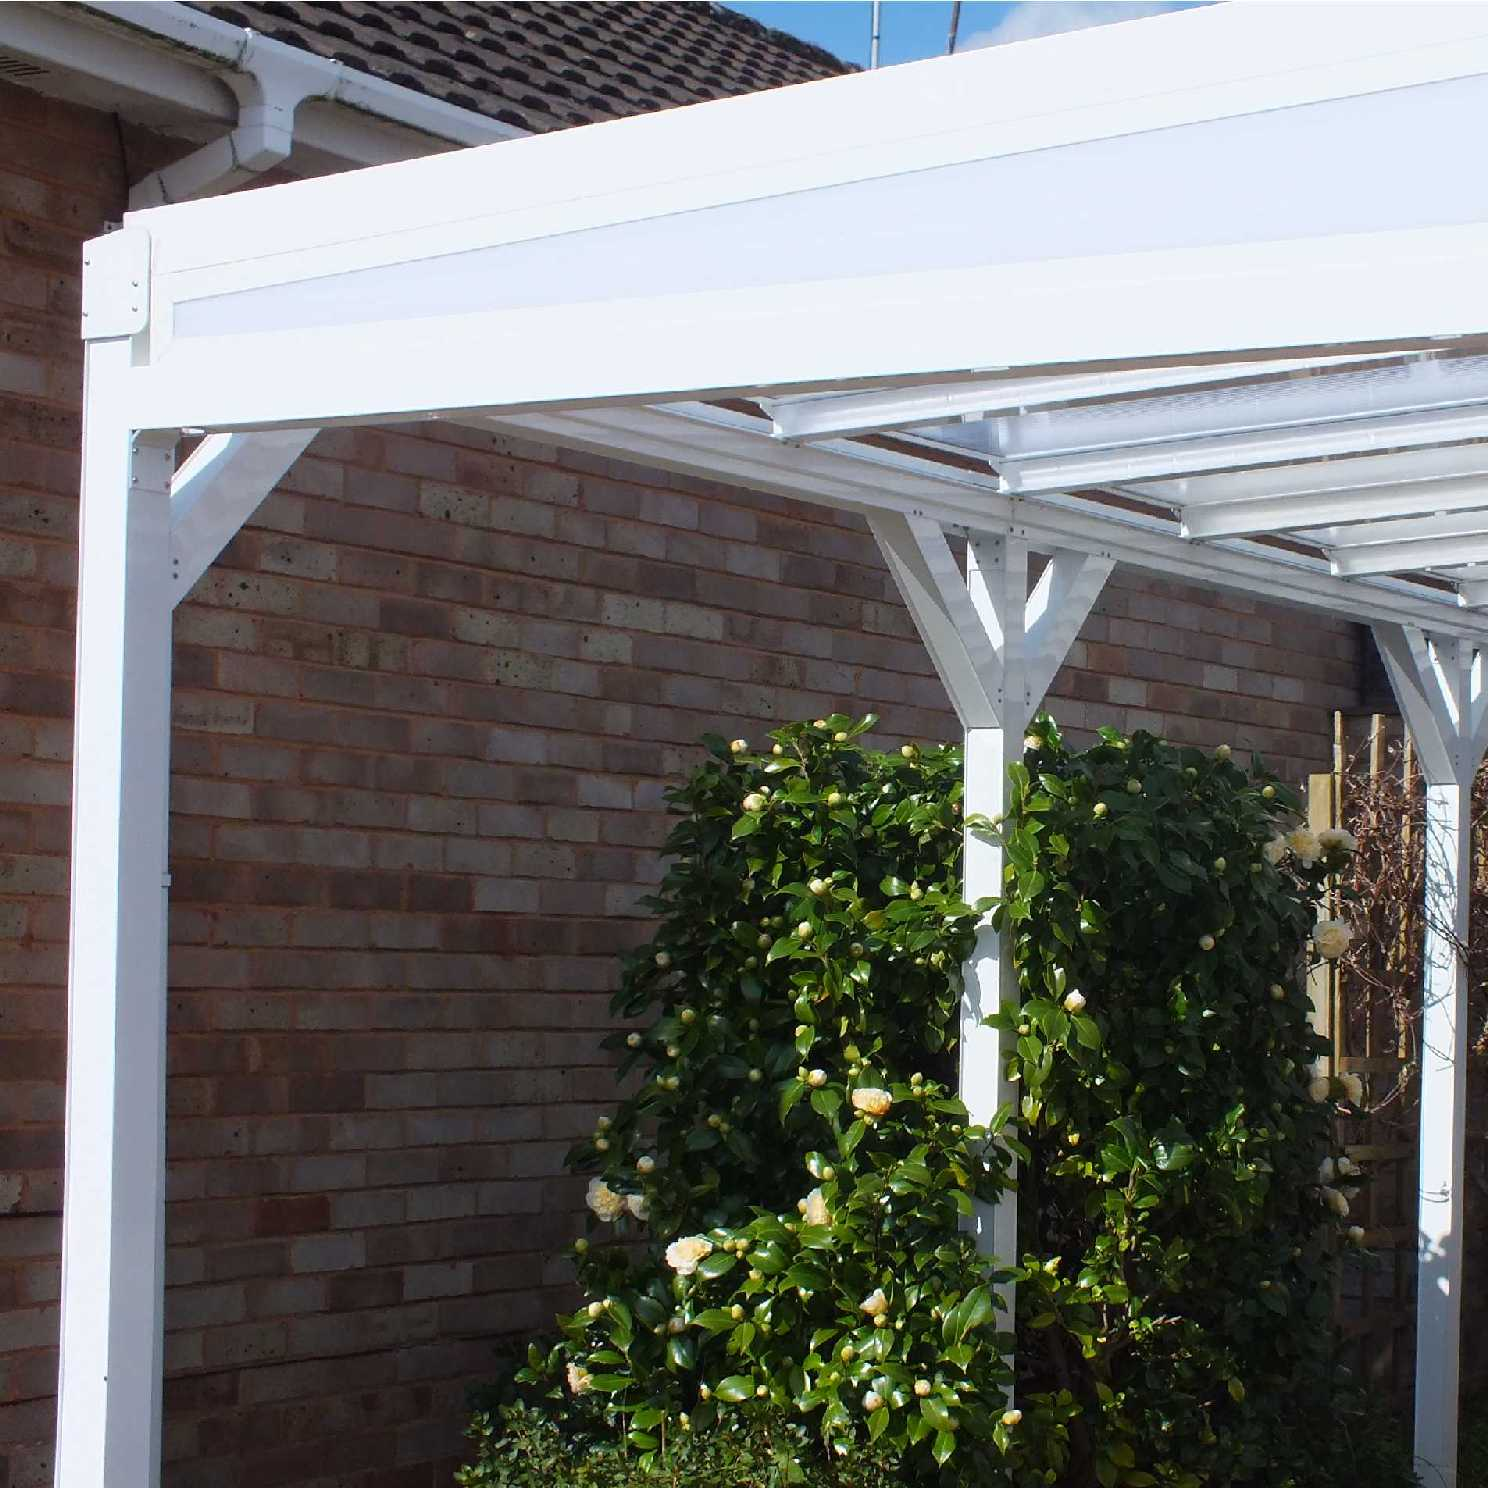 Omega Smart White Lean-To Canopy with 16mm Polycarbonate Glazing - 2.1m (W) x 4.0m (P), (2) Supporting Posts from Omega Build